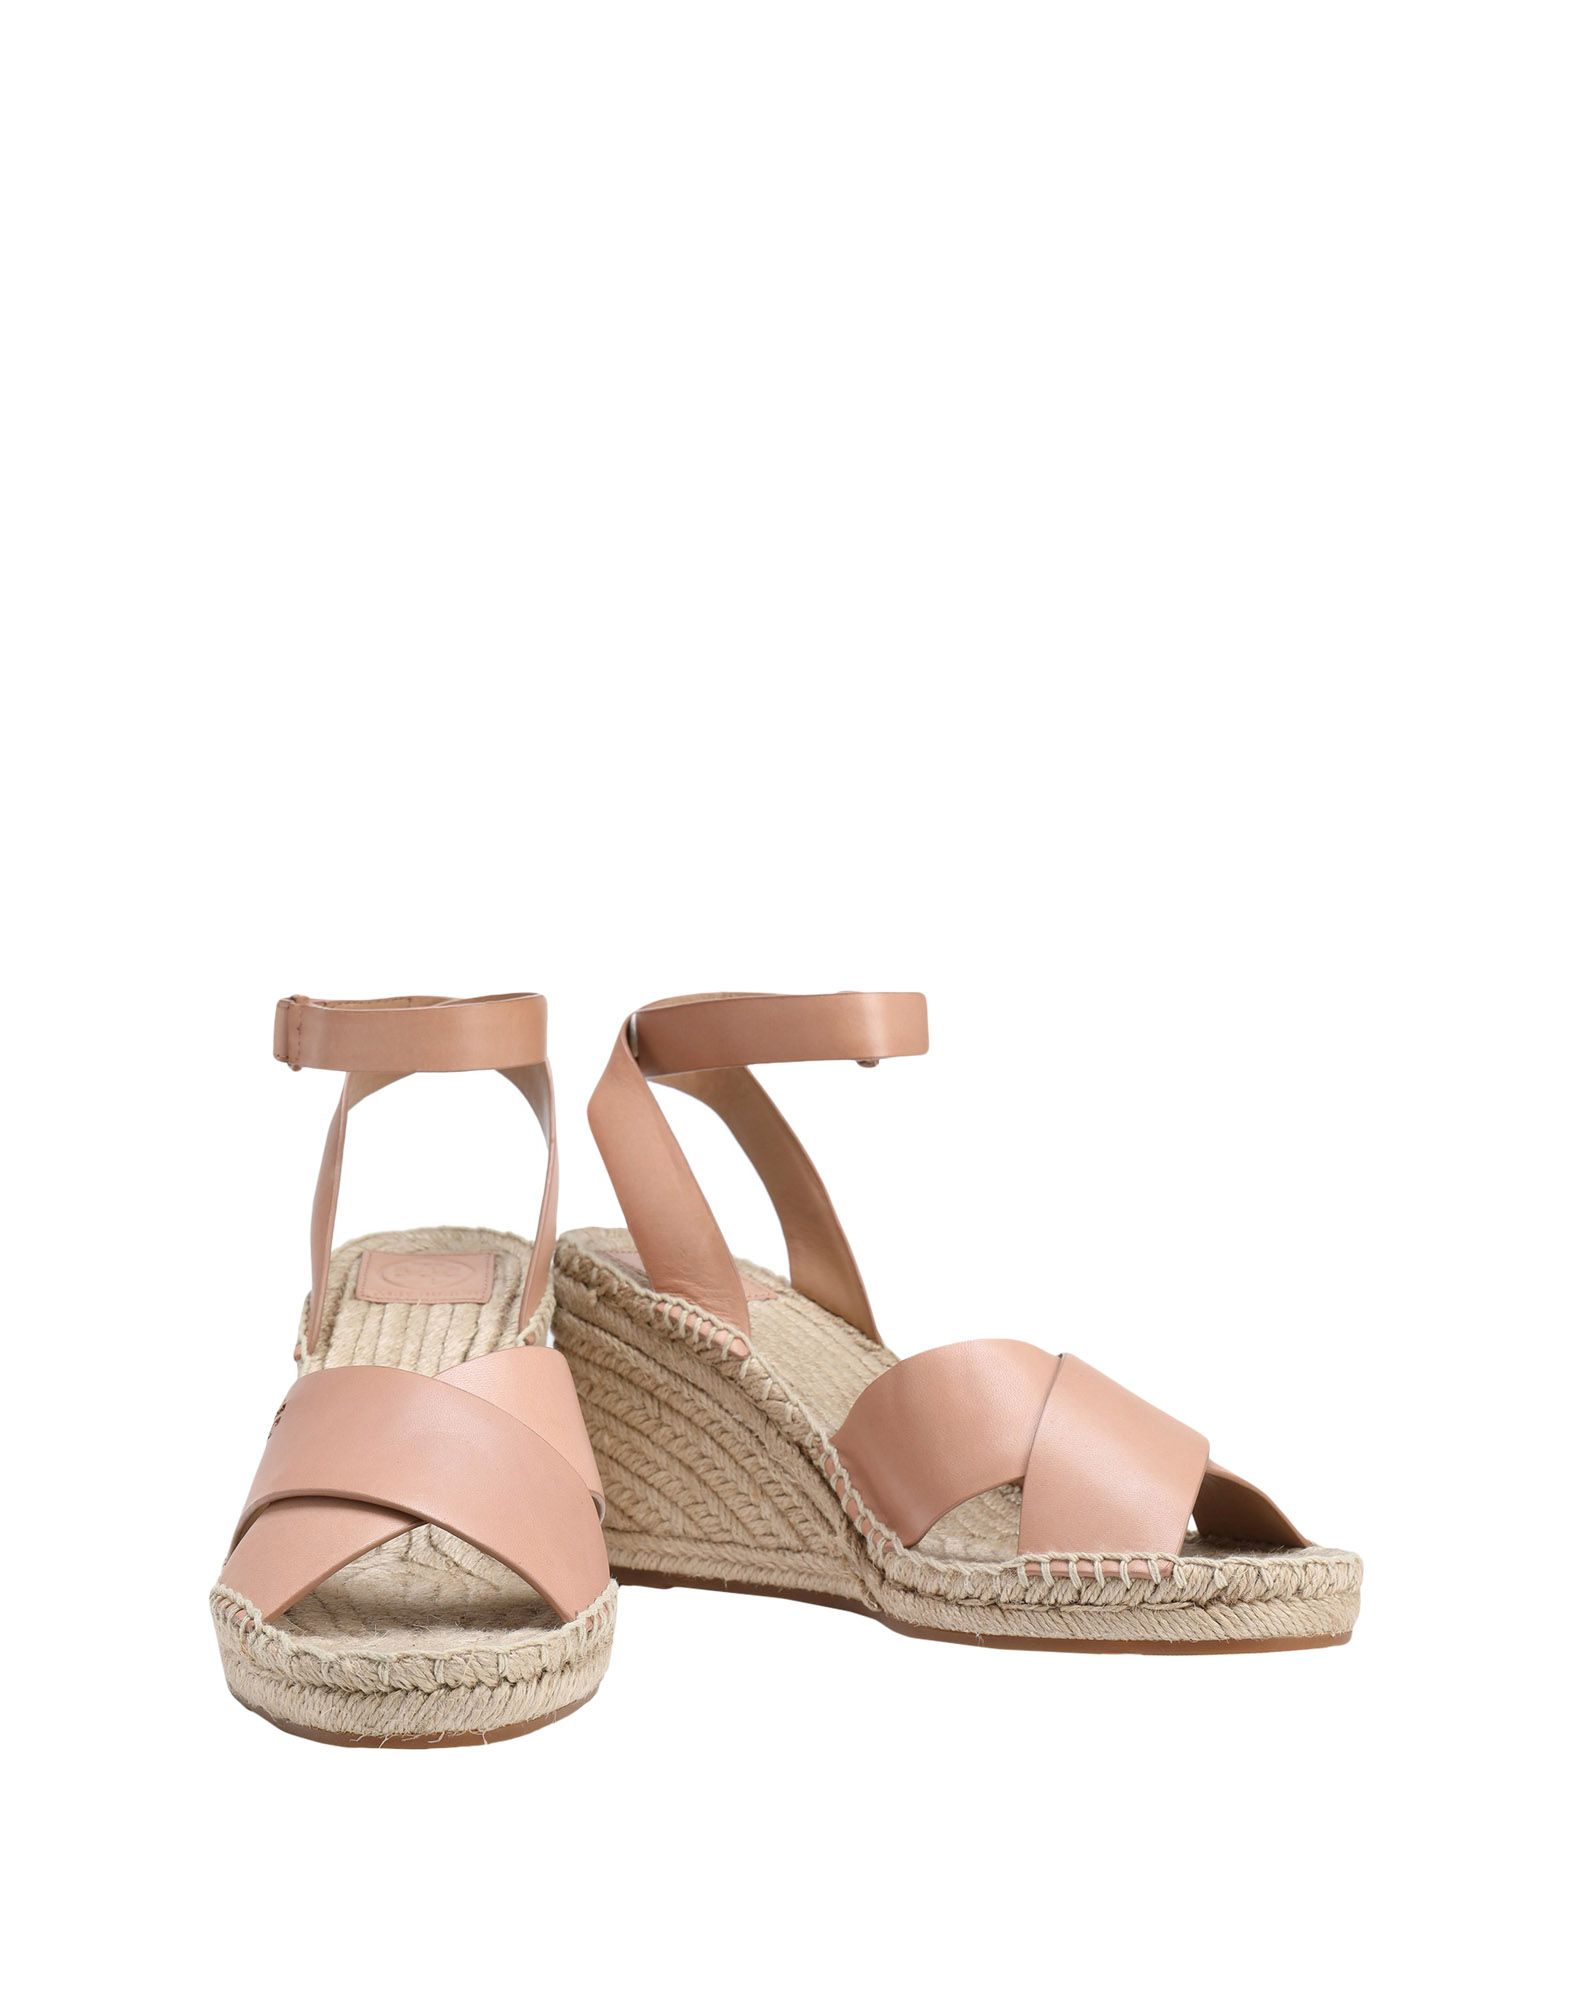 Tory Tory Tory Burch Sandals - Women Tory Burch Sandals online on  United Kingdom - 11526692AQ c1fabf